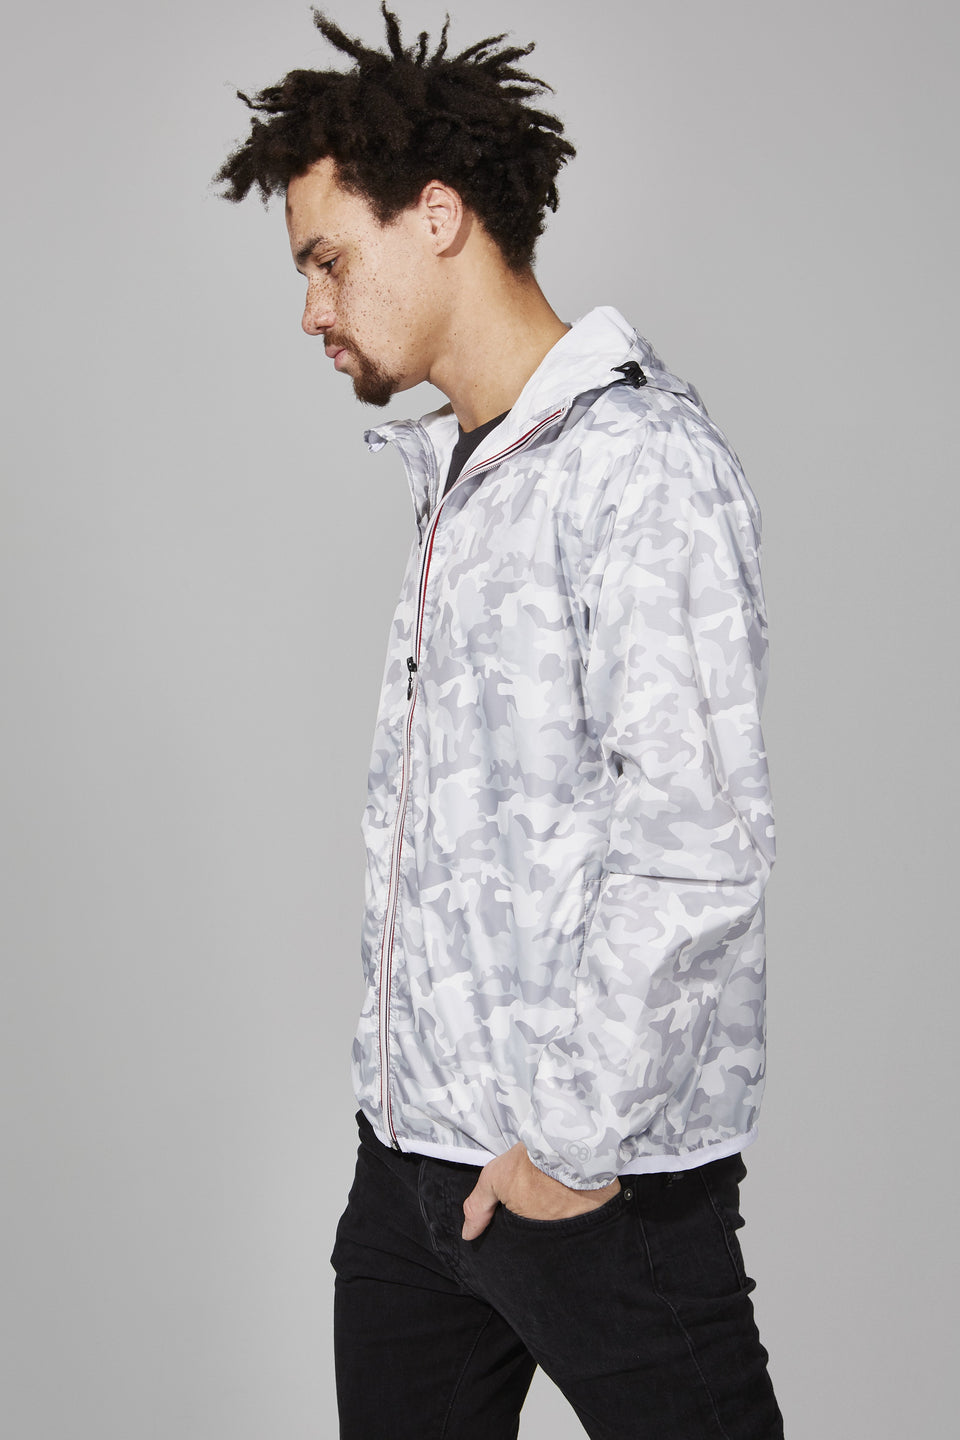 White Camo Full Zip Packable Jacket - Men -  O8lifestyle